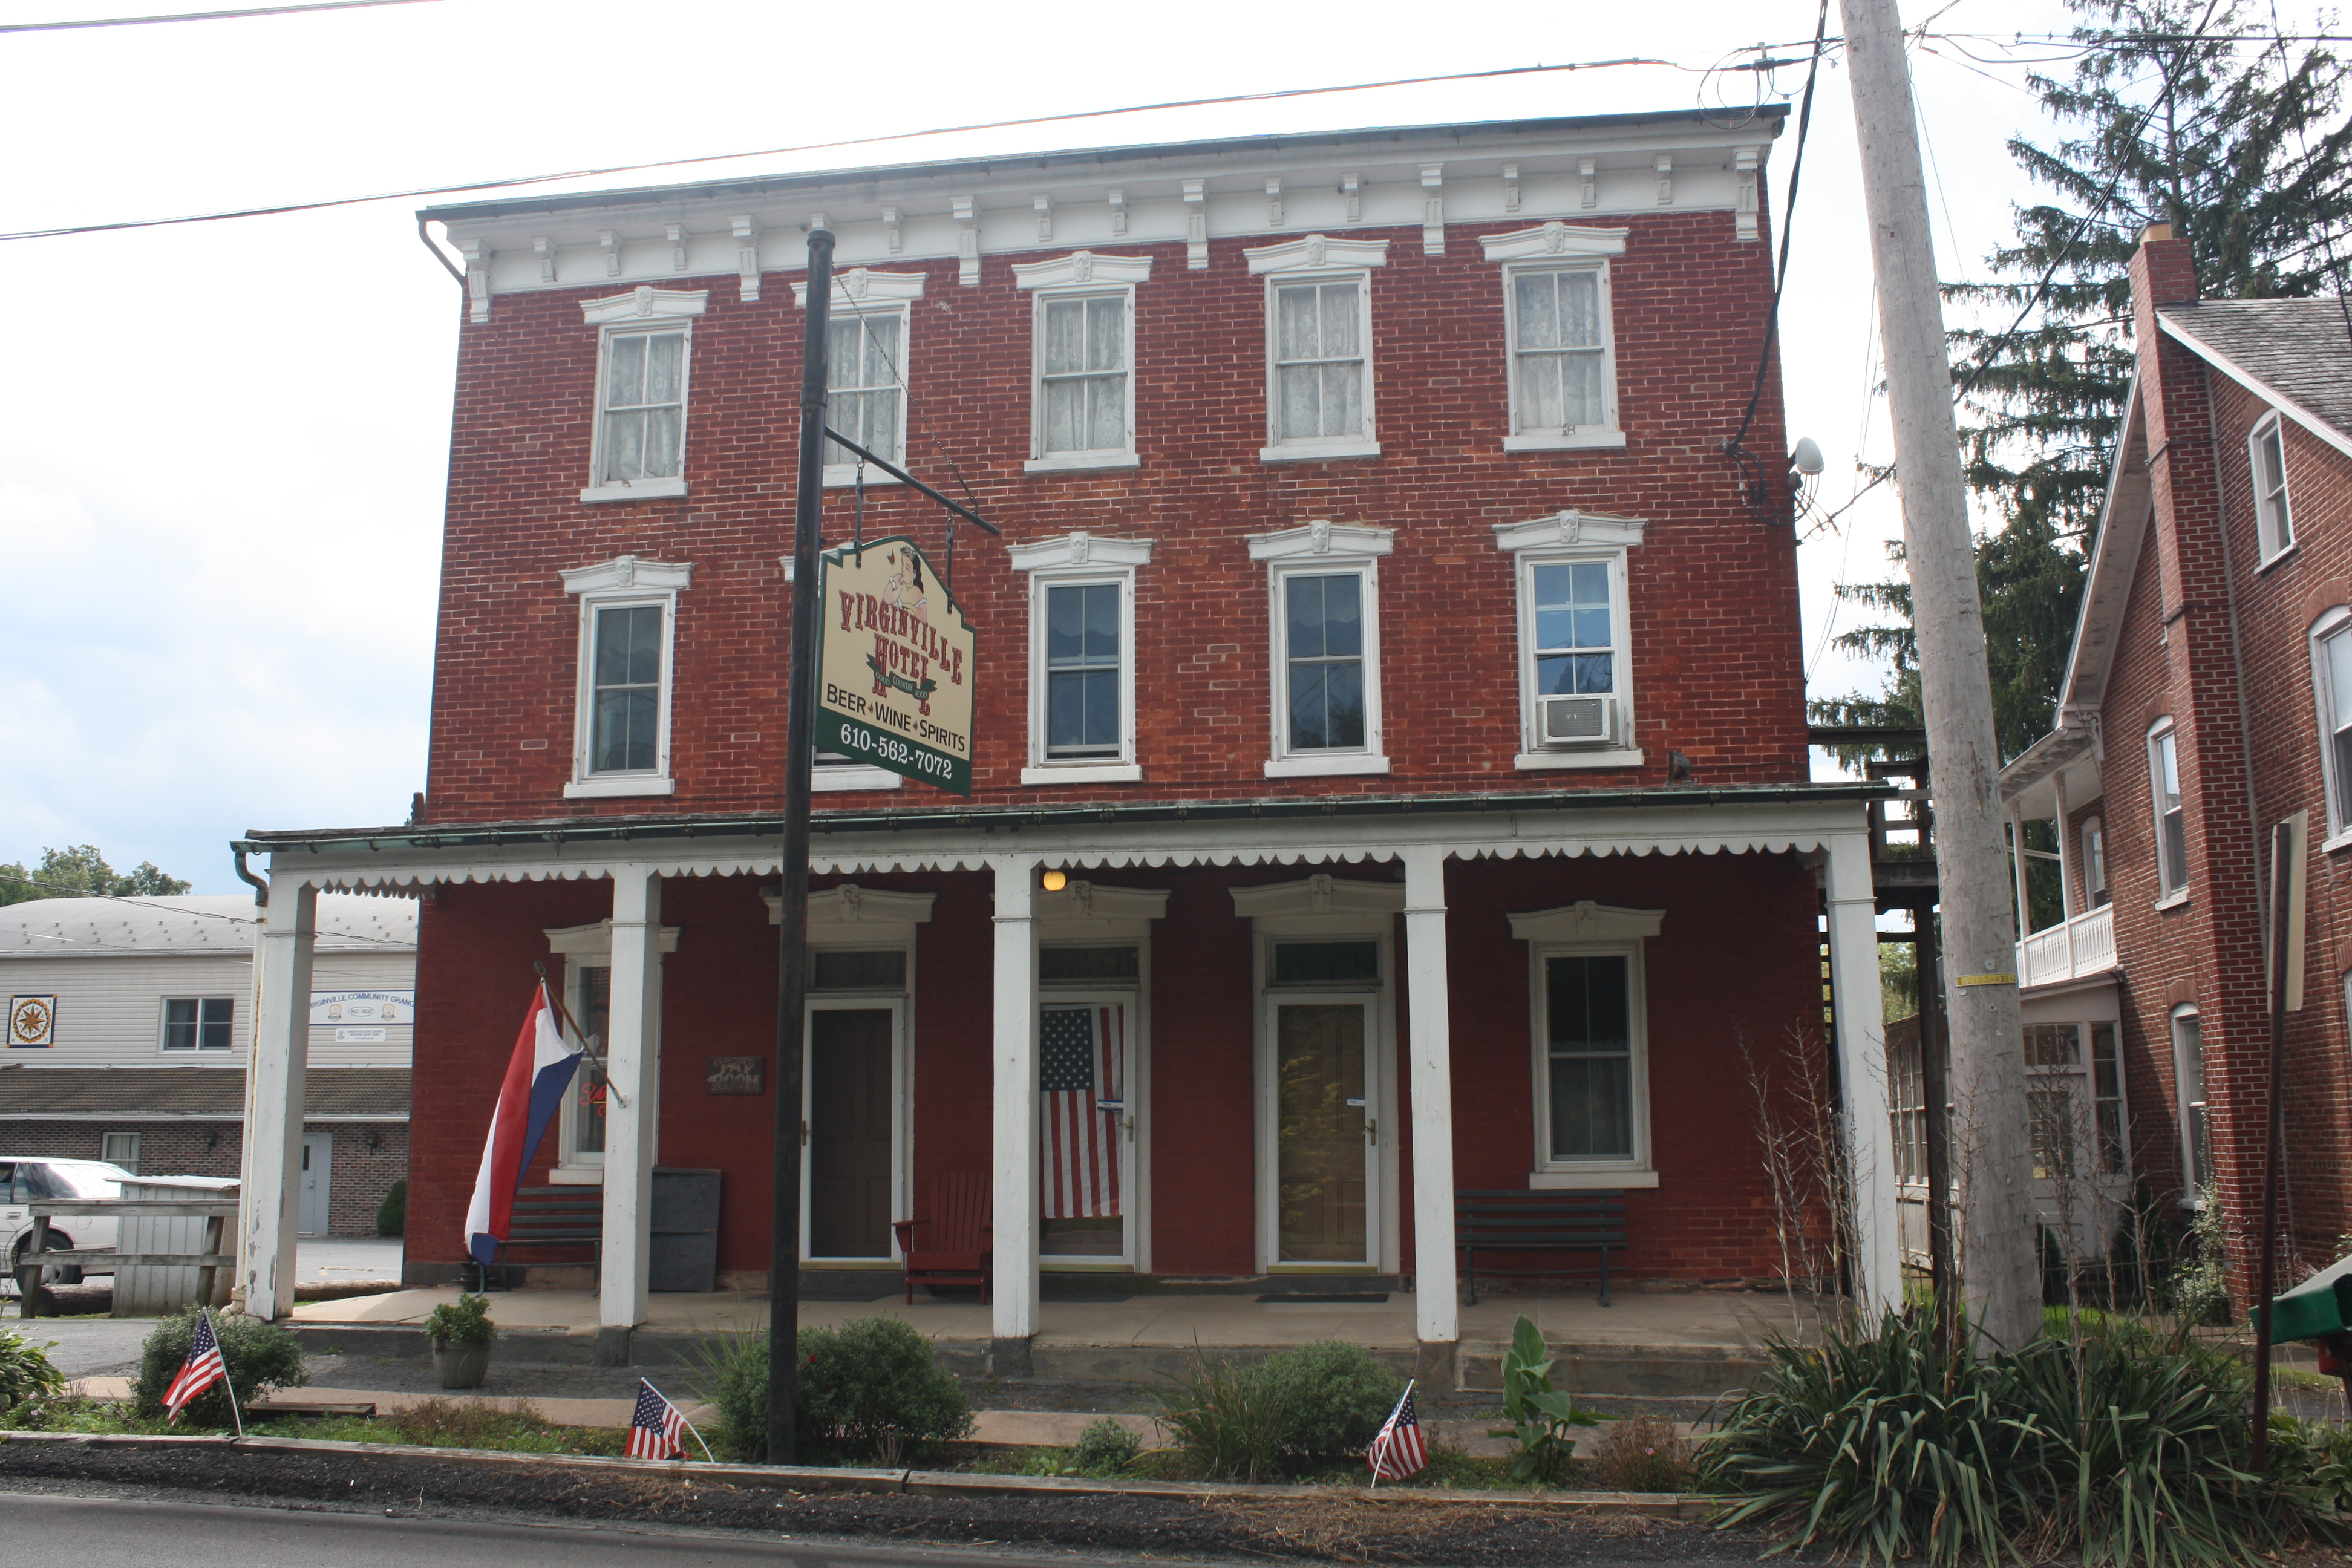 virginville dating Latest local news for virginville, pa : local news for virginville, pa continually updated from thousands of sources on the web.